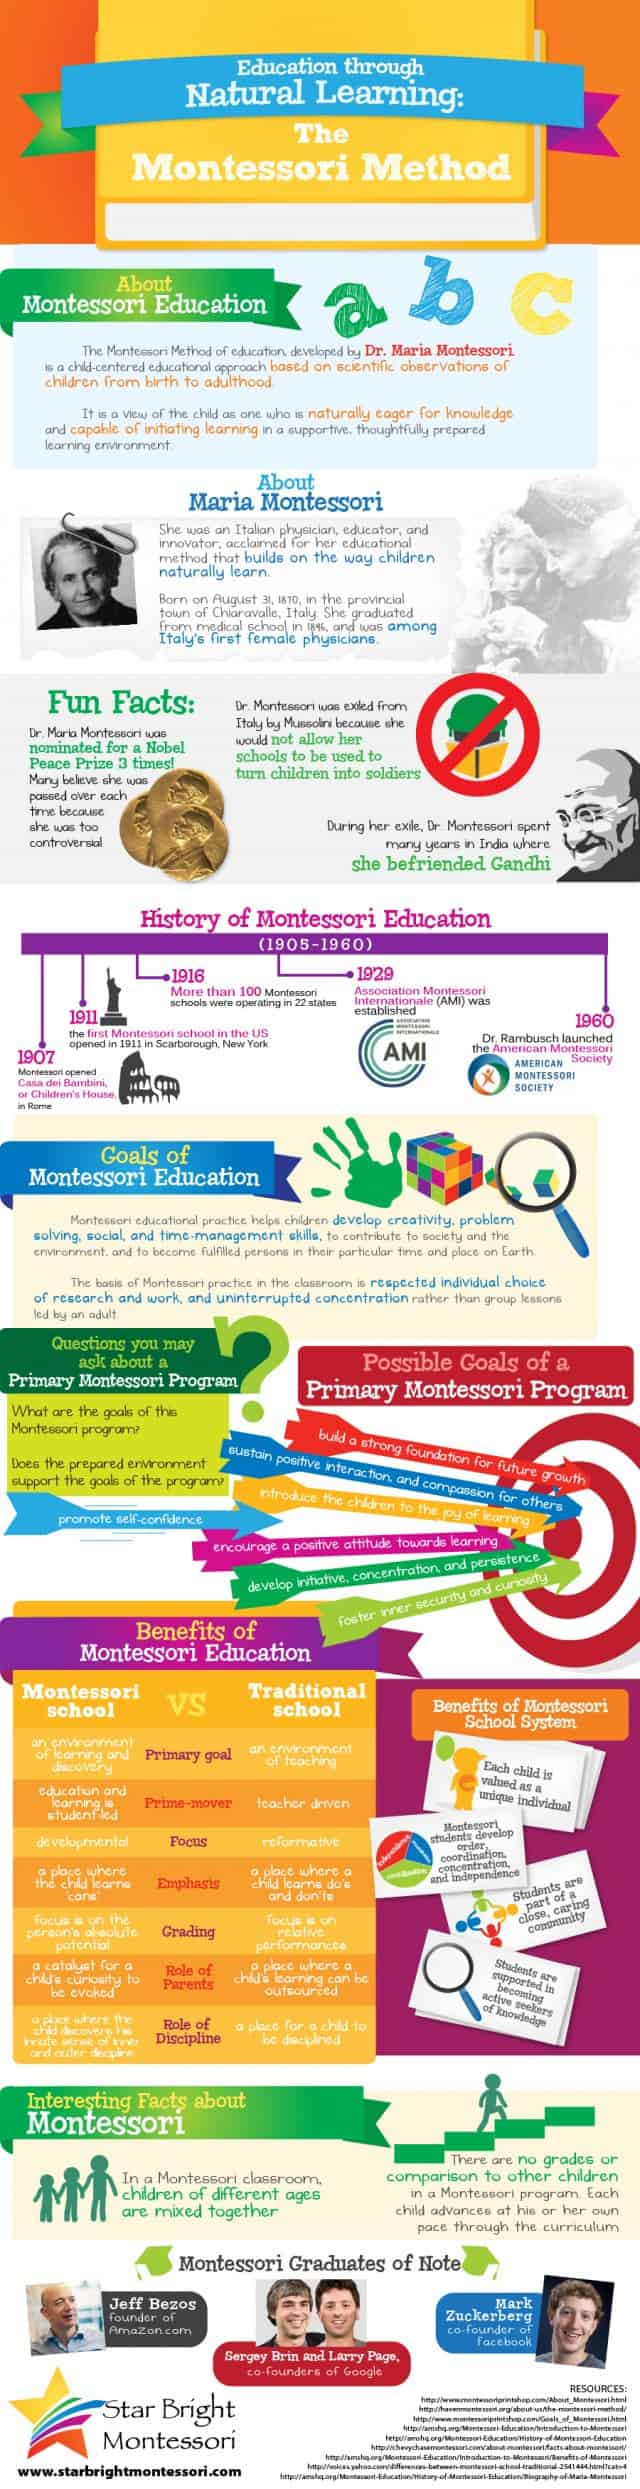 education the montessori method infographic daily infographic education the montessori method